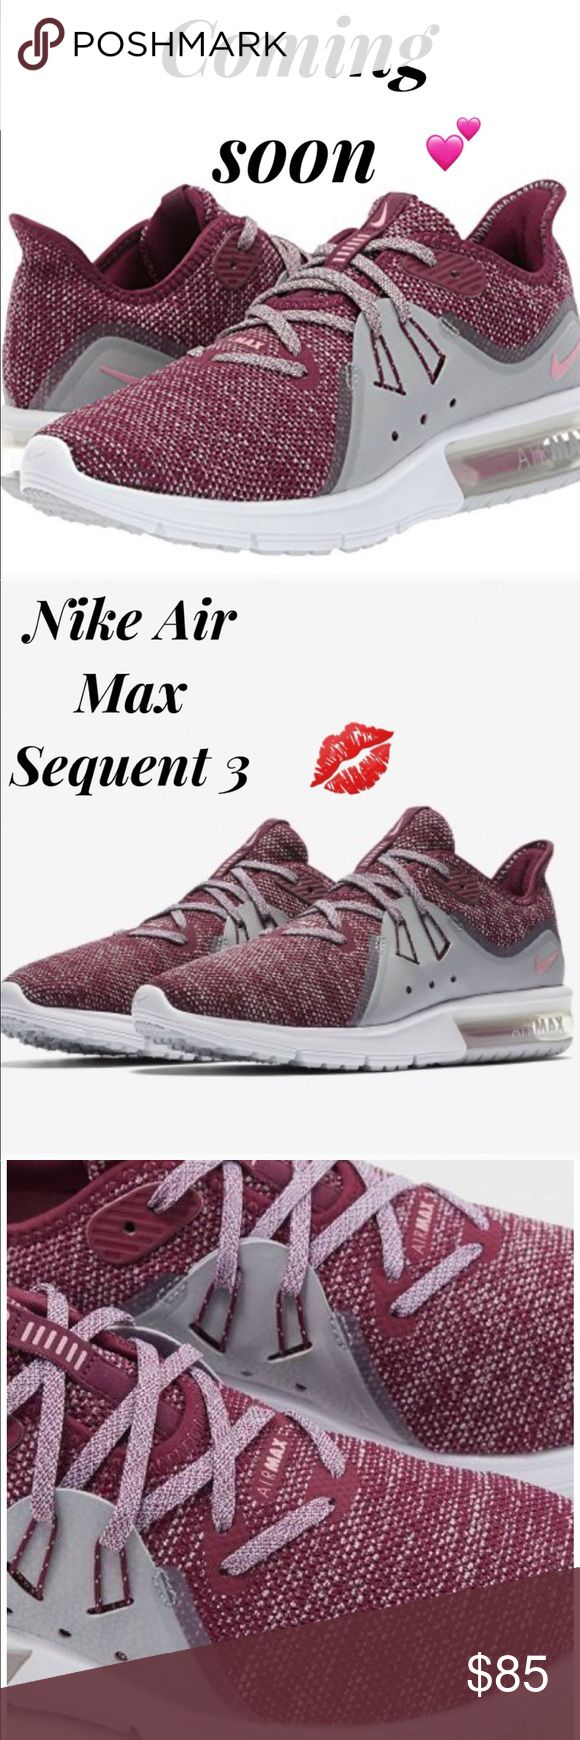 Newest Nike Air Max Sequent for Women ❤️ *New for spring and Beautiful! ❤️  Nike Air Max Sequent $100+ everywhere... here only $85 (firm) stock photos don't do these justice. Once they arrive I will take the photos myself... these will sell in my store quickly so don't be afraid to order yours now. Nike Shoes Sneakers